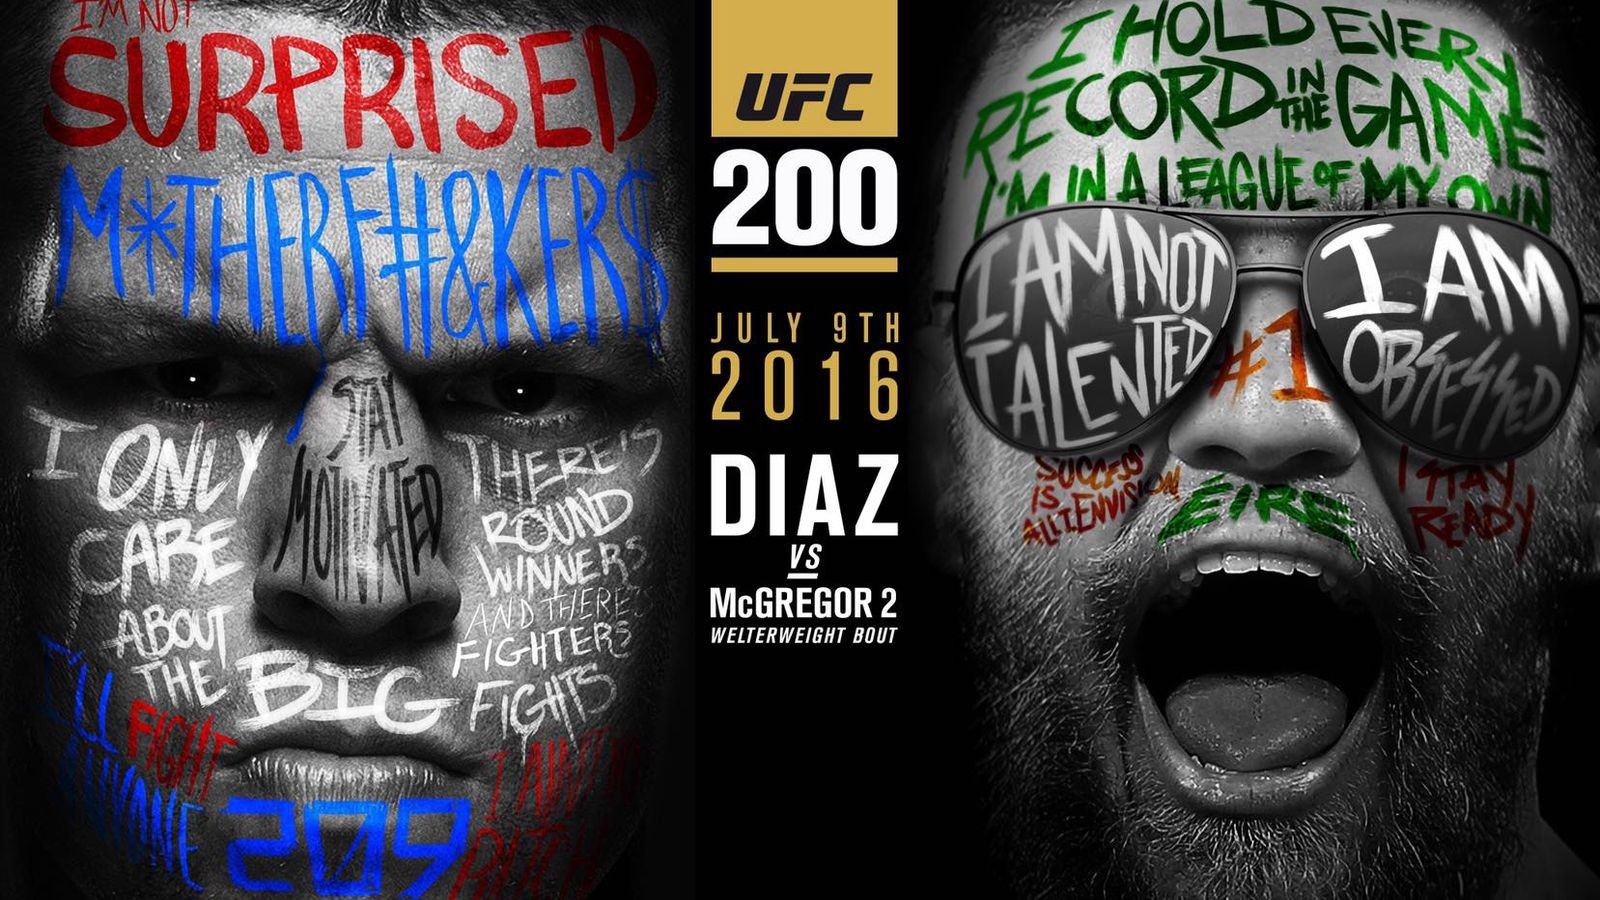 Ufc hd sports 4k wallpapers images backgrounds photos and pictures ufc voltagebd Image collections